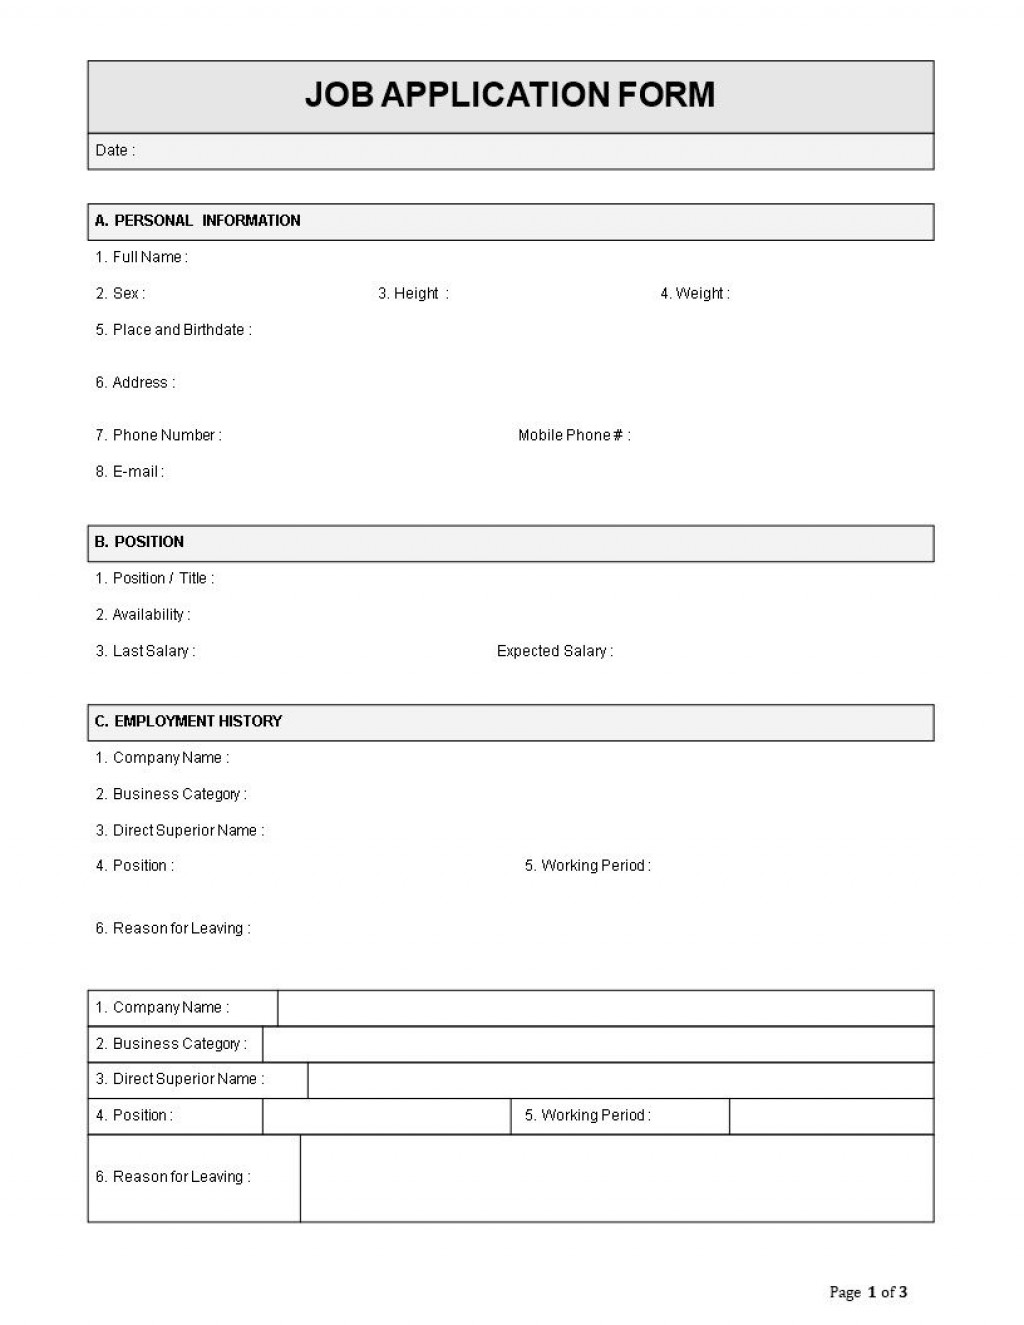 000 Fascinating Basic Employment Application Template Free High Definition  Employee Evaluation Form DownloadLarge